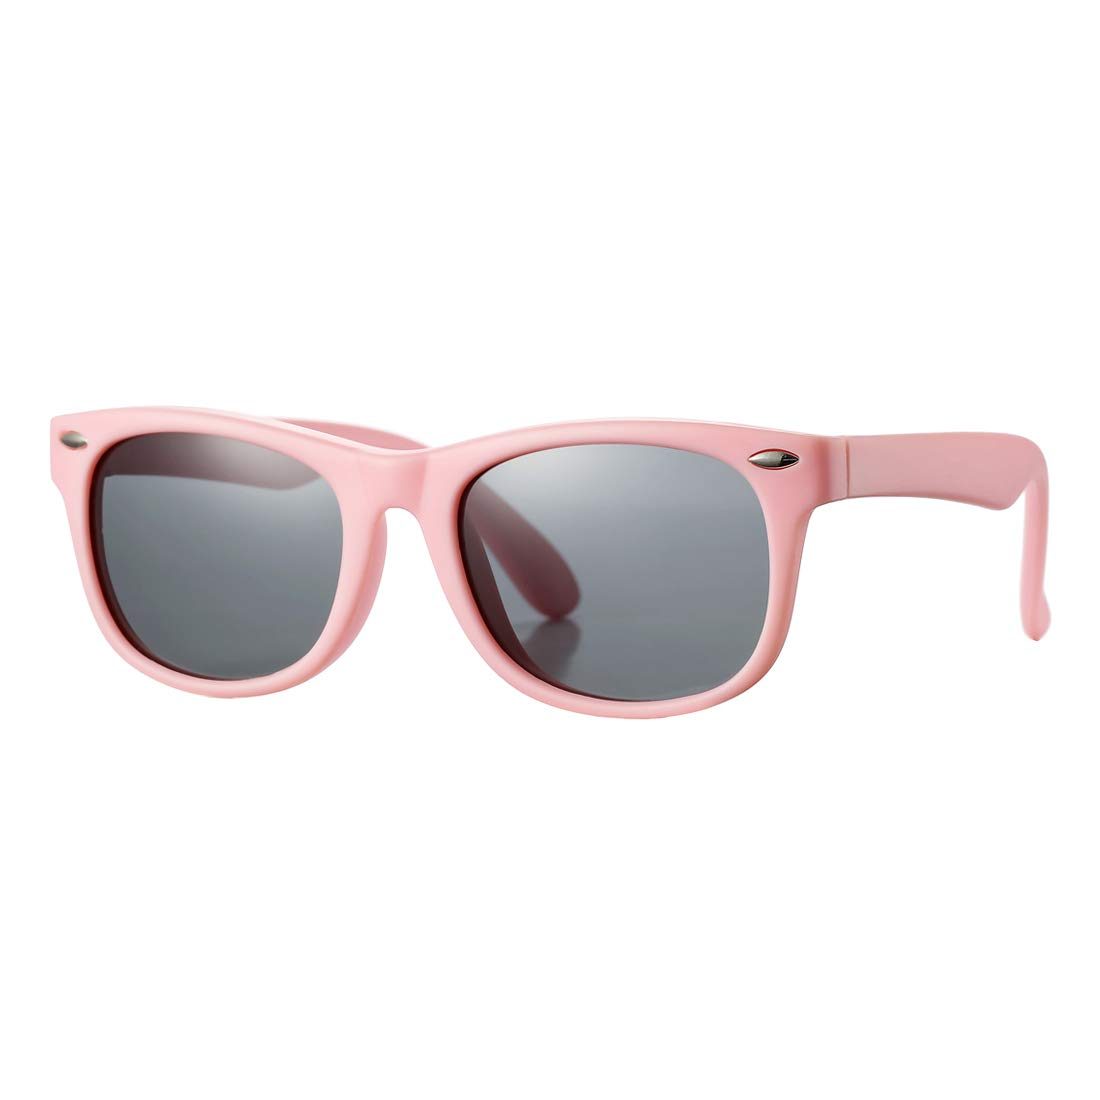 Kids Polarized Sunglasses TPEE Rubber Flexible Shades for Girls Boys Age 3-10 (Pink Frame/Grey Lens)